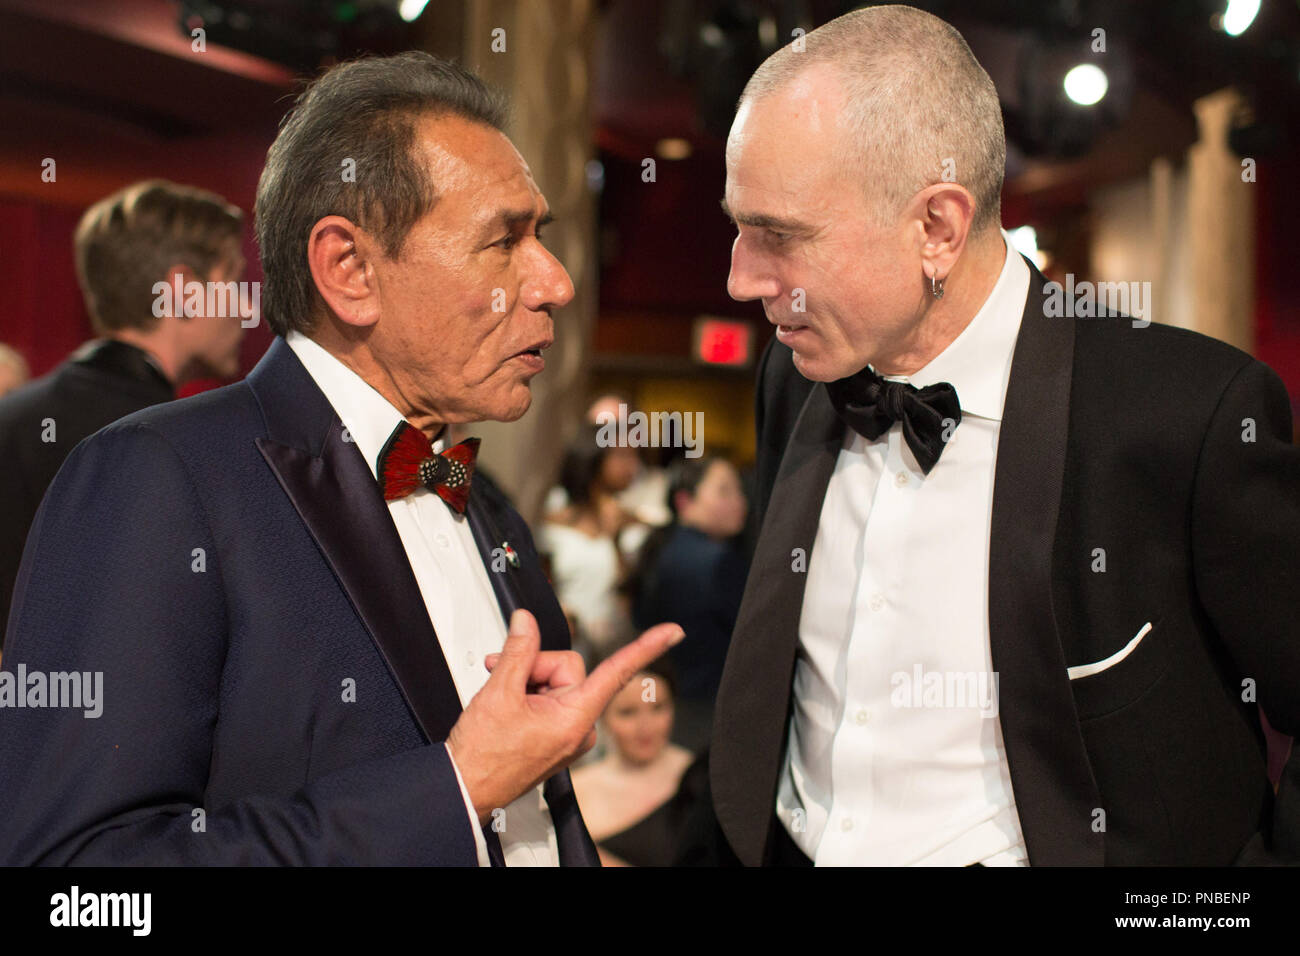 Wes Studi talks with Oscar®-nominee Daniel Day-Lewis during the live ABC Telecast of the 90th Oscars® at the Dolby® Theatre in Hollywood, CA on Sunday, March 4, 2018.  File Reference # 33546_549PLX  For Editorial Use Only -  All Rights Reserved - Stock Image